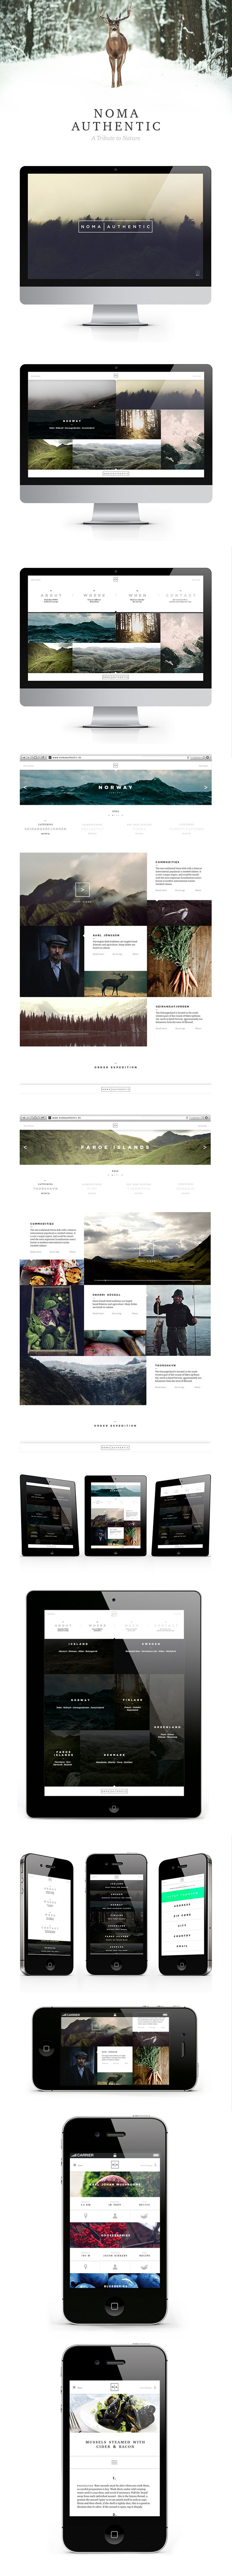 Noma Authentic.  I love the clean layout and photos of nature in this design…